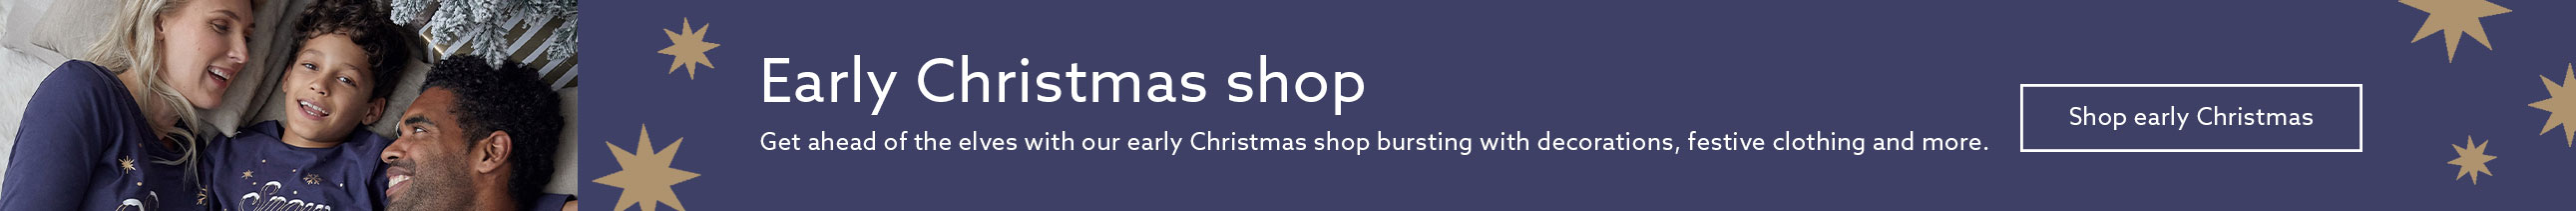 Chistmas-Gift-banner-DT